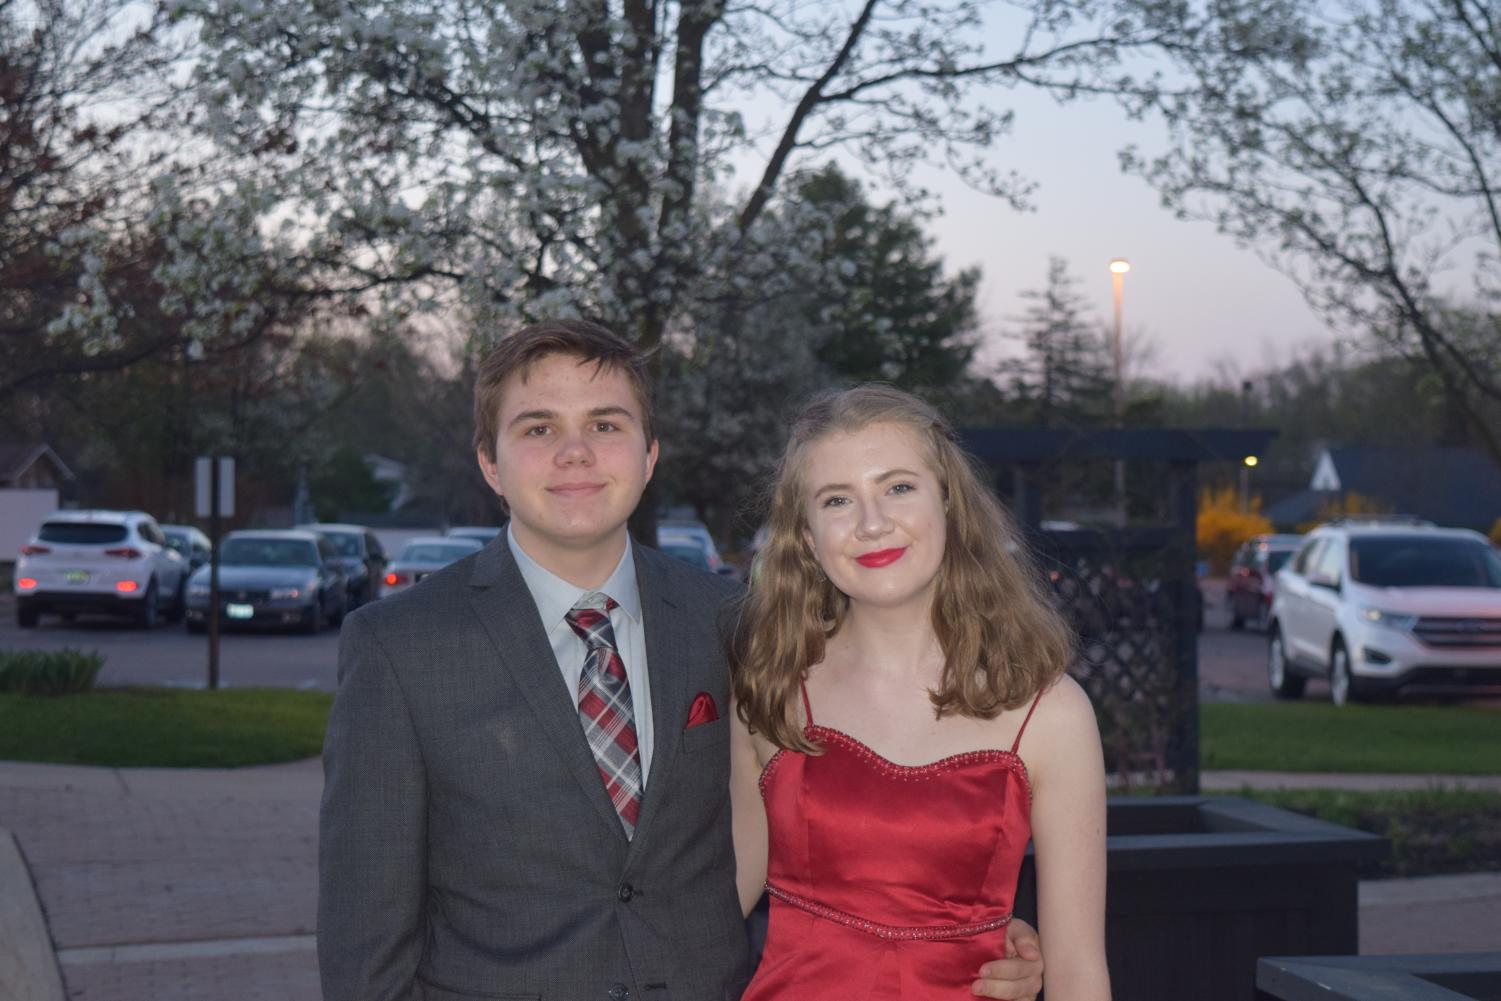 Grace+Jensen+and+Evan+Phillips+pose+for+a+photo+before+entering+Community+High+Prom.